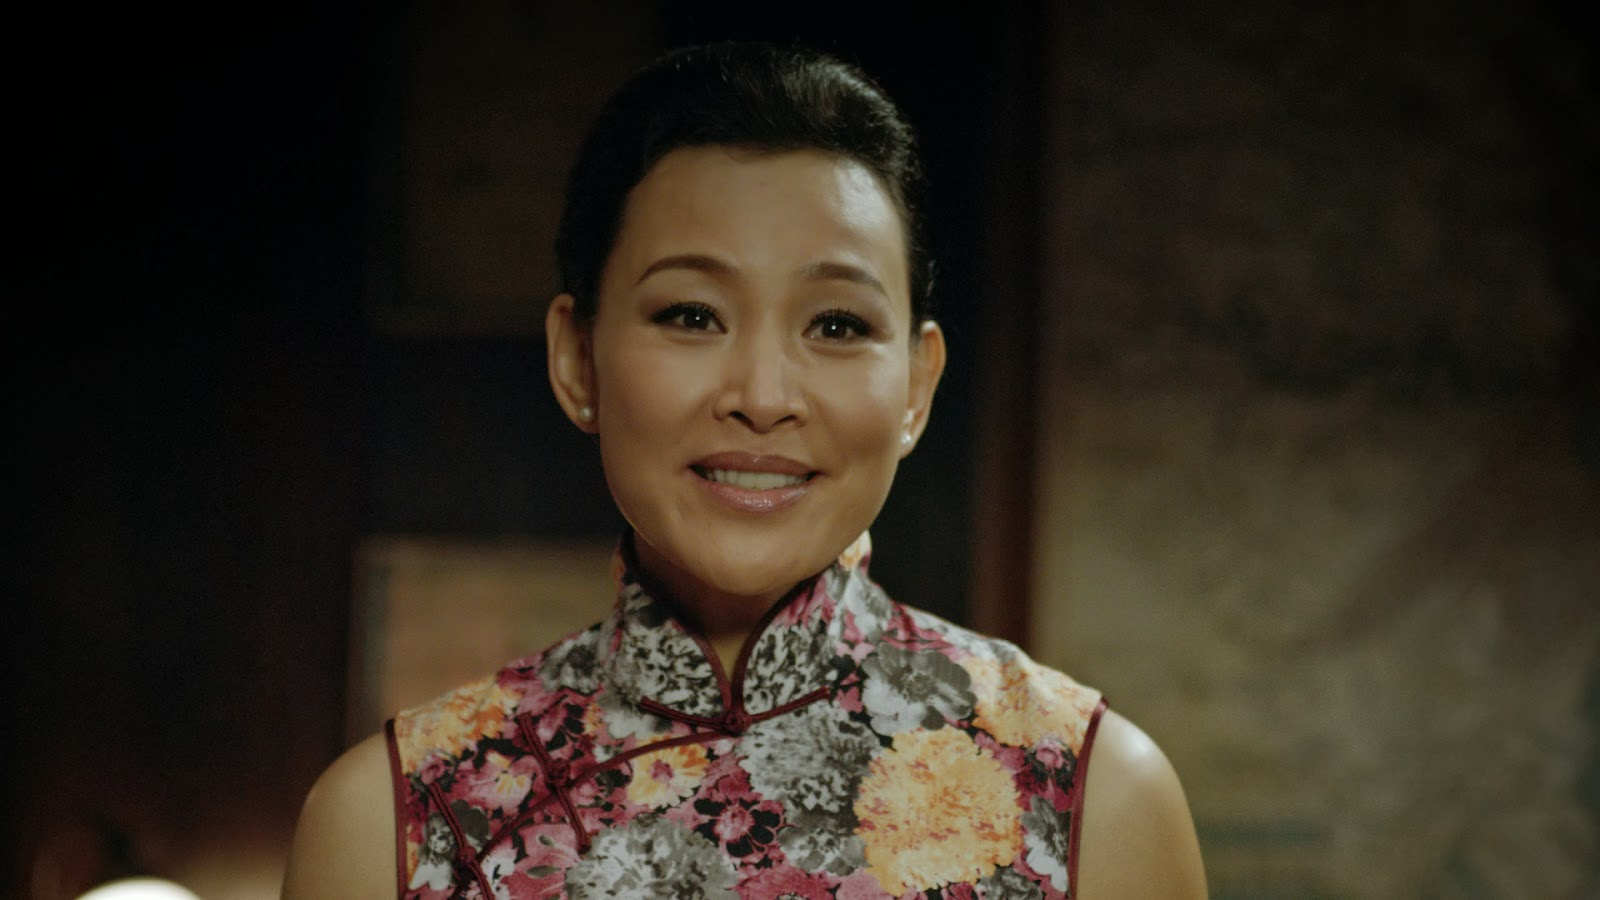 Forum on this topic: Olivia Grant (actress, born 1983), chen-xiaoxu/